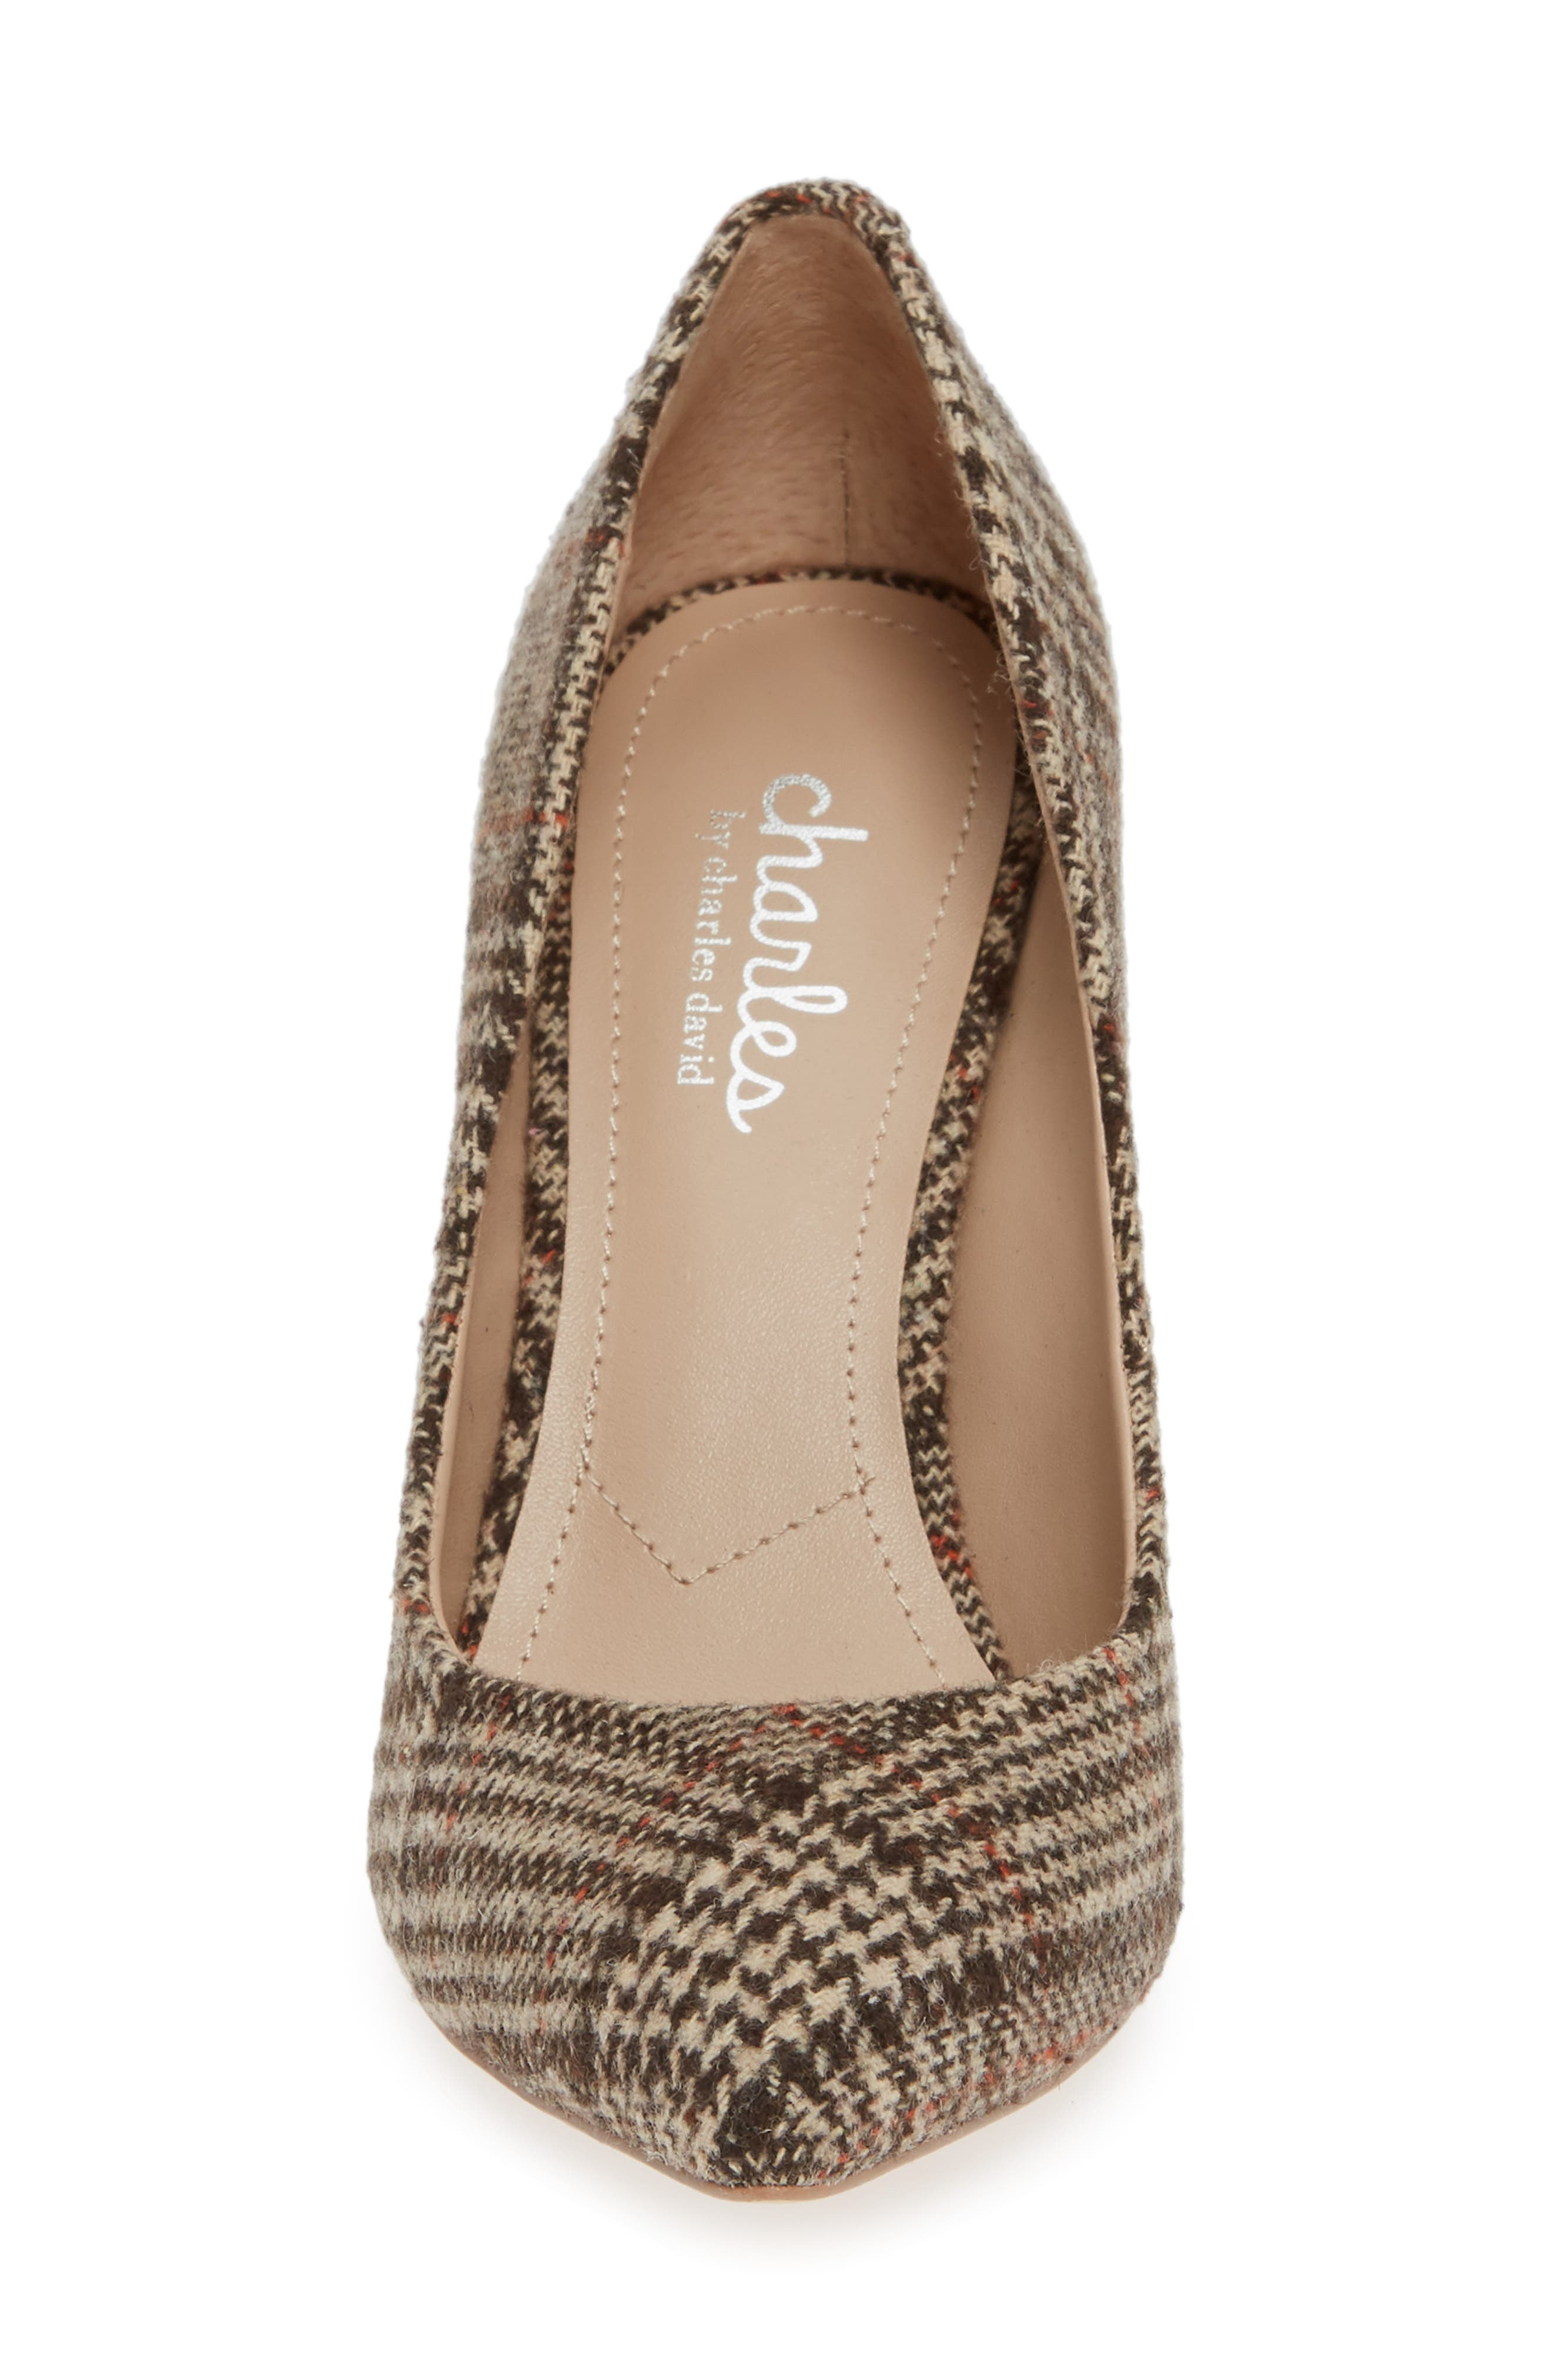 CHARLES BY CHARLES DAVID, Maxx Pointy Toe Pump, Alternate thumbnail 4, color, BROWN PLAID FABRIC